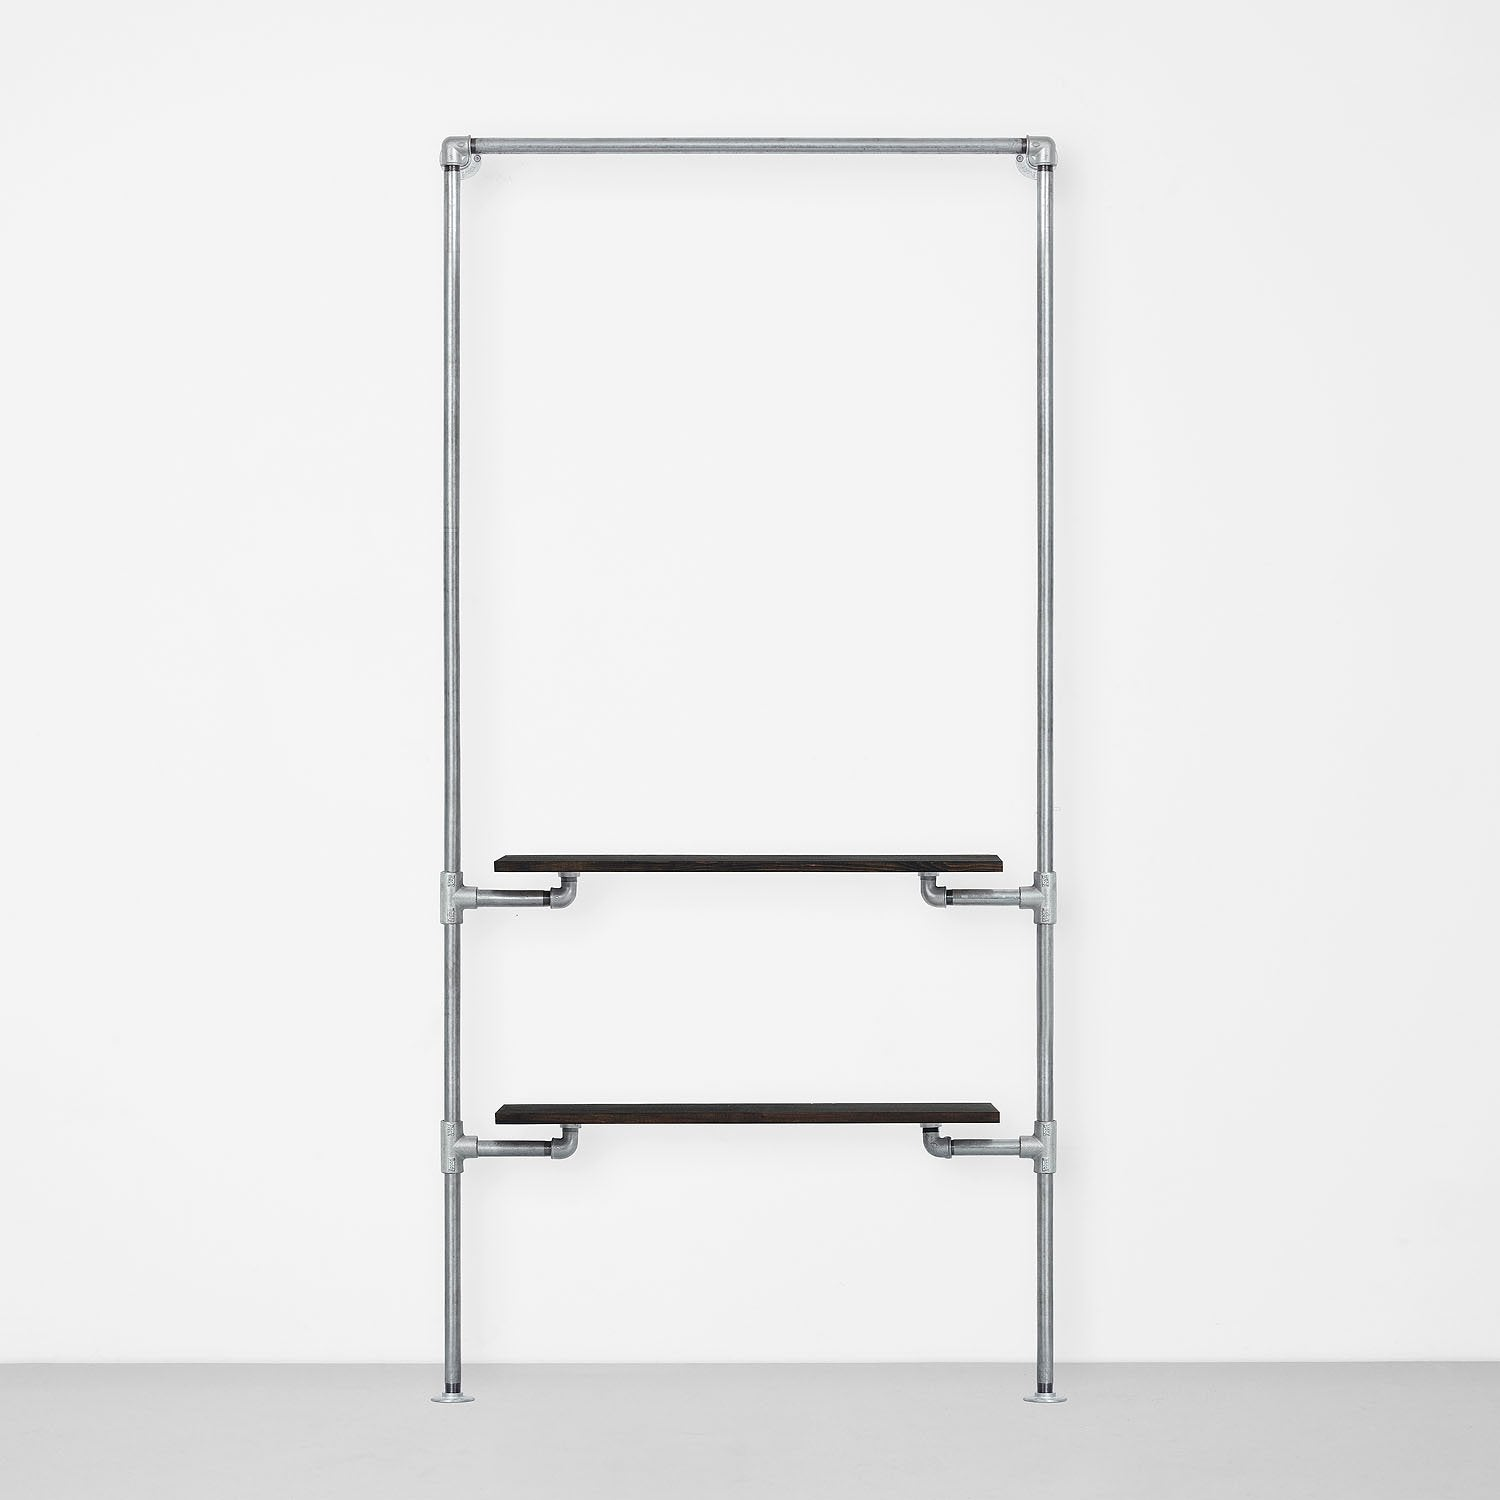 The Walk-In 1 row wardrobe system - (1 rail + 2 shelves)